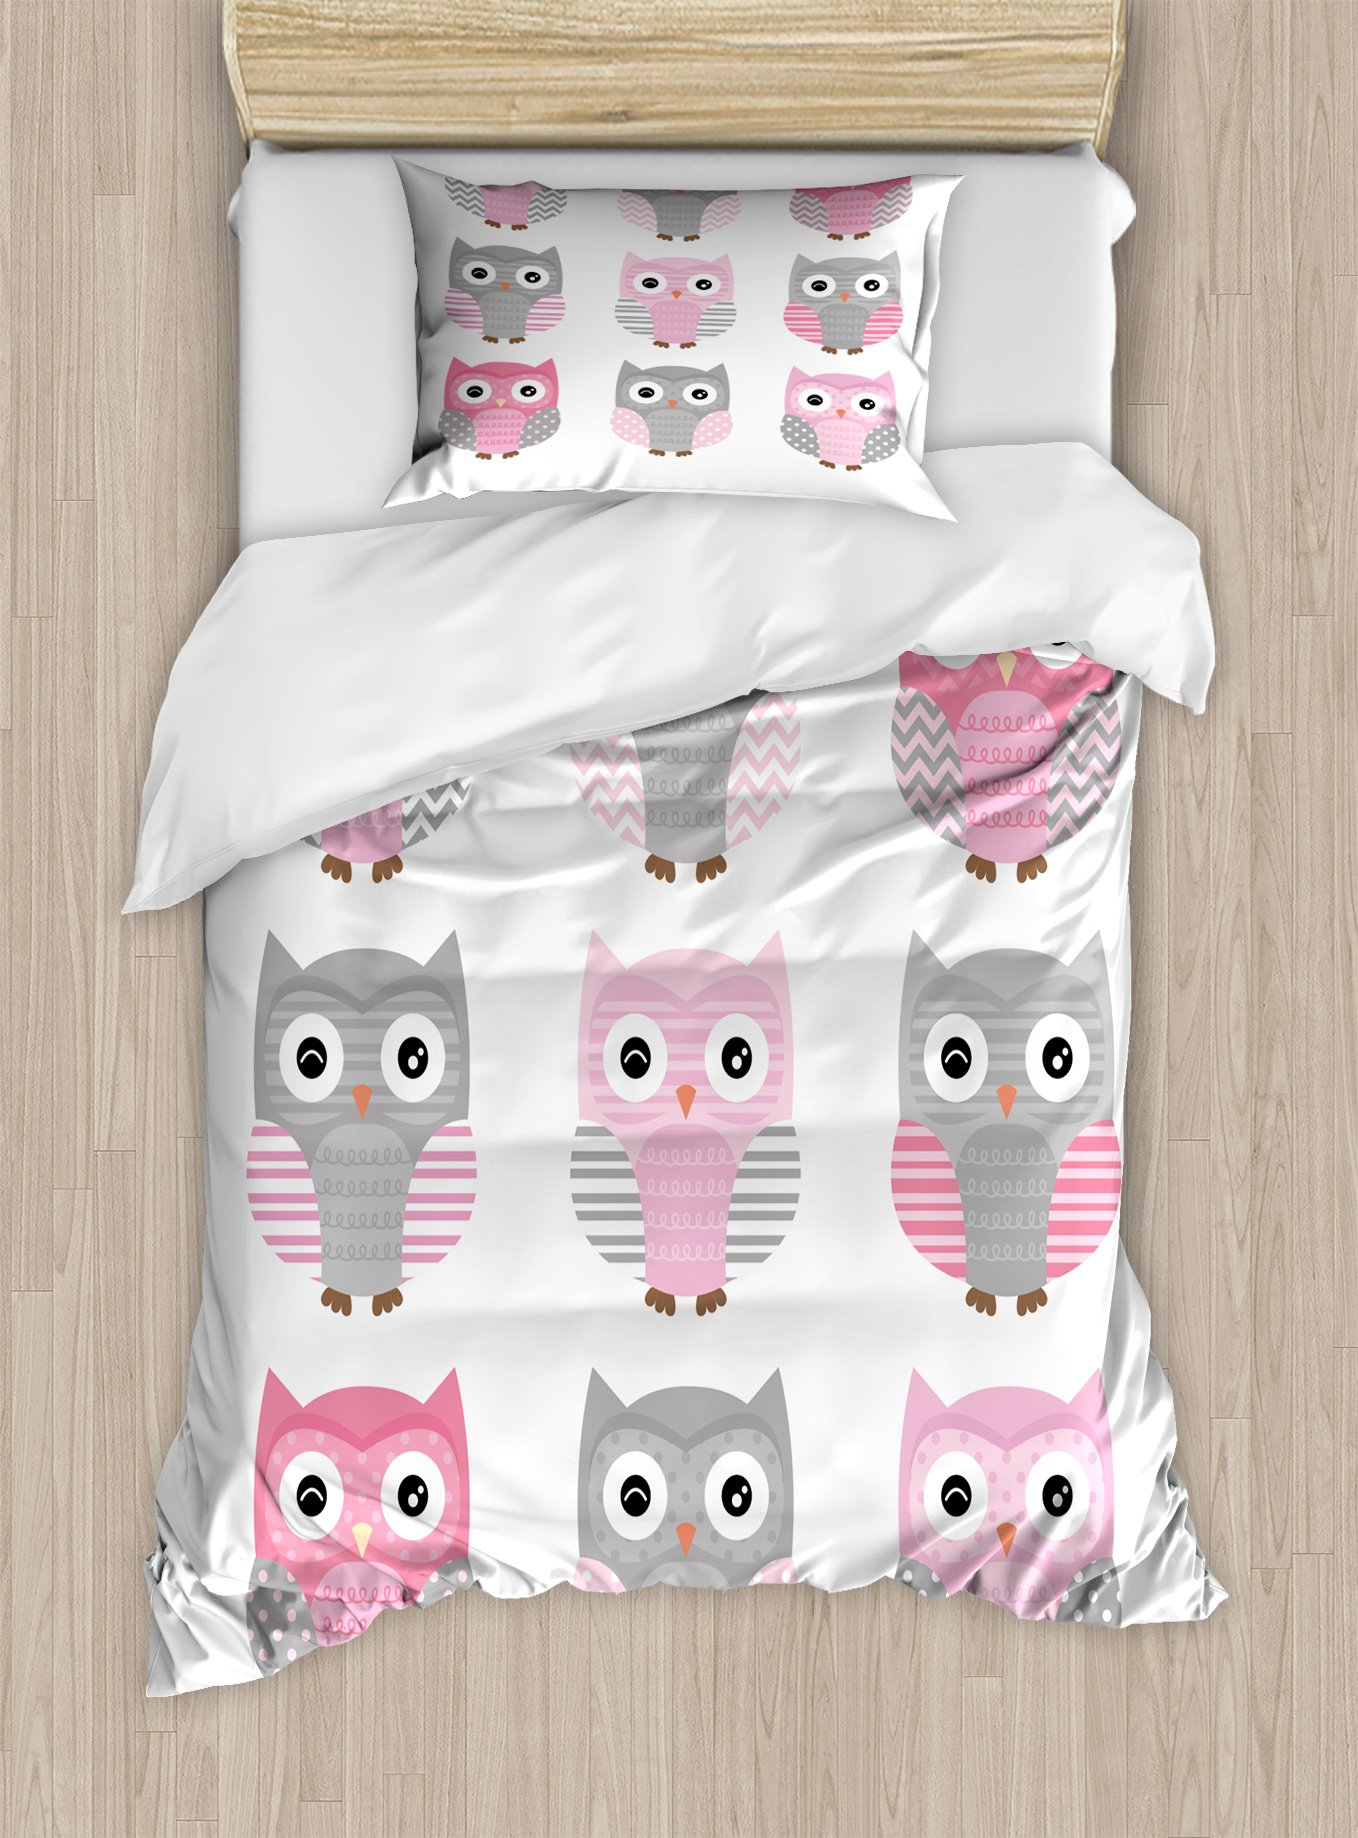 Ambesonne Pink and Grey Twin Size Duvet Cover Set, Cute Owl Figures Nocturnal Exotic Mystic Forest Night Animals Illustration, Decorative 2 Piece Bedding Set with 1 Pillow Sham, Blush Grey